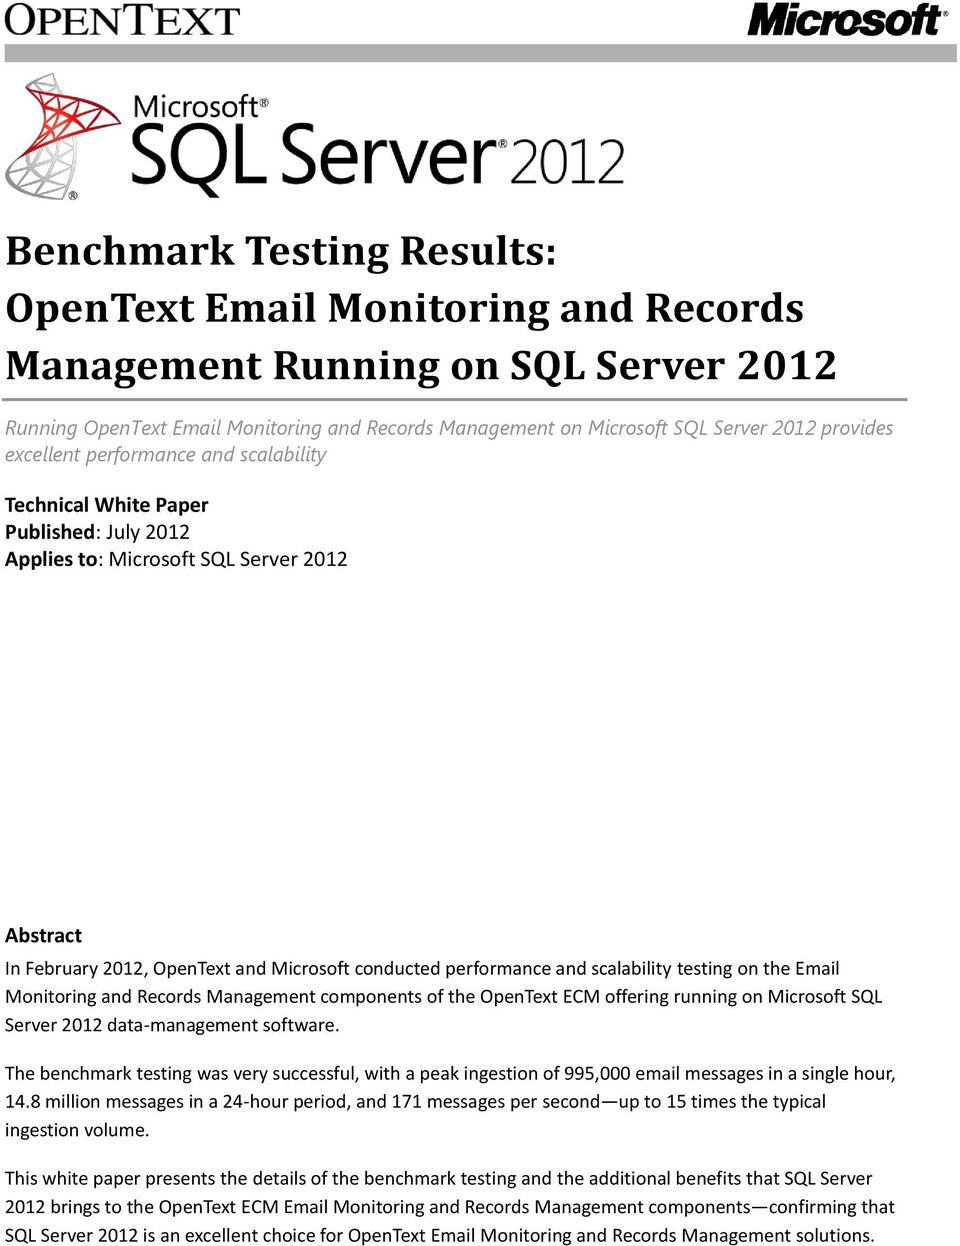 scalability testing on the Email Monitoring and Records Management components of the OpenText ECM offering running on Microsoft SQL Server 2012 data-management software.